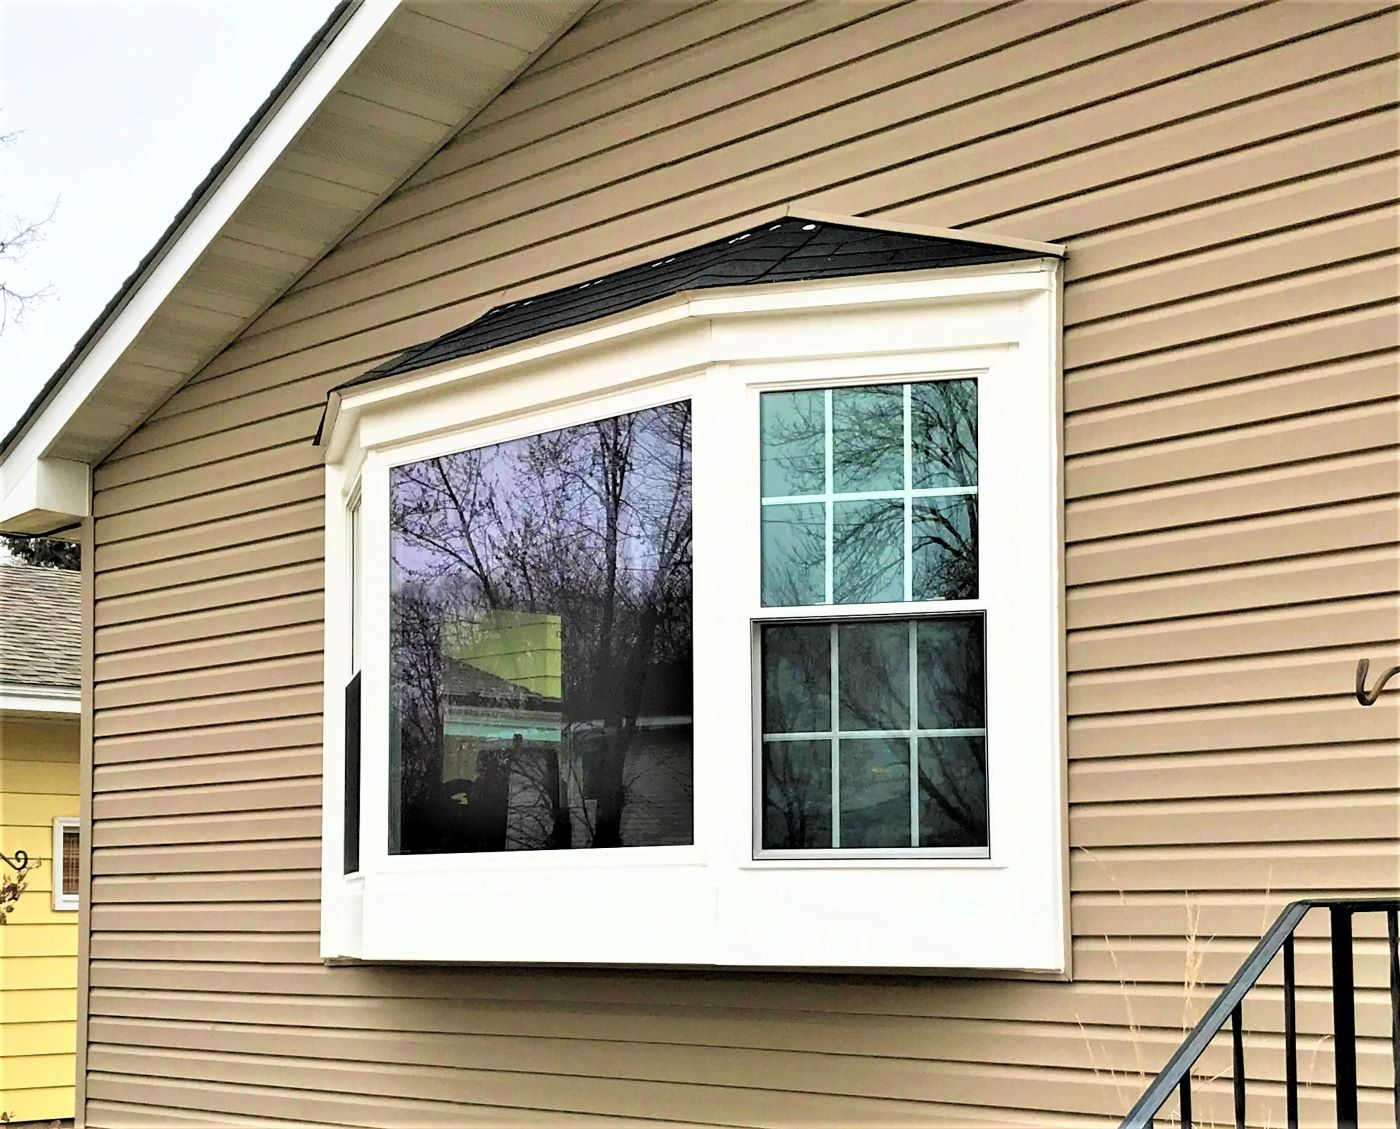 fridley bay seasonGuard window